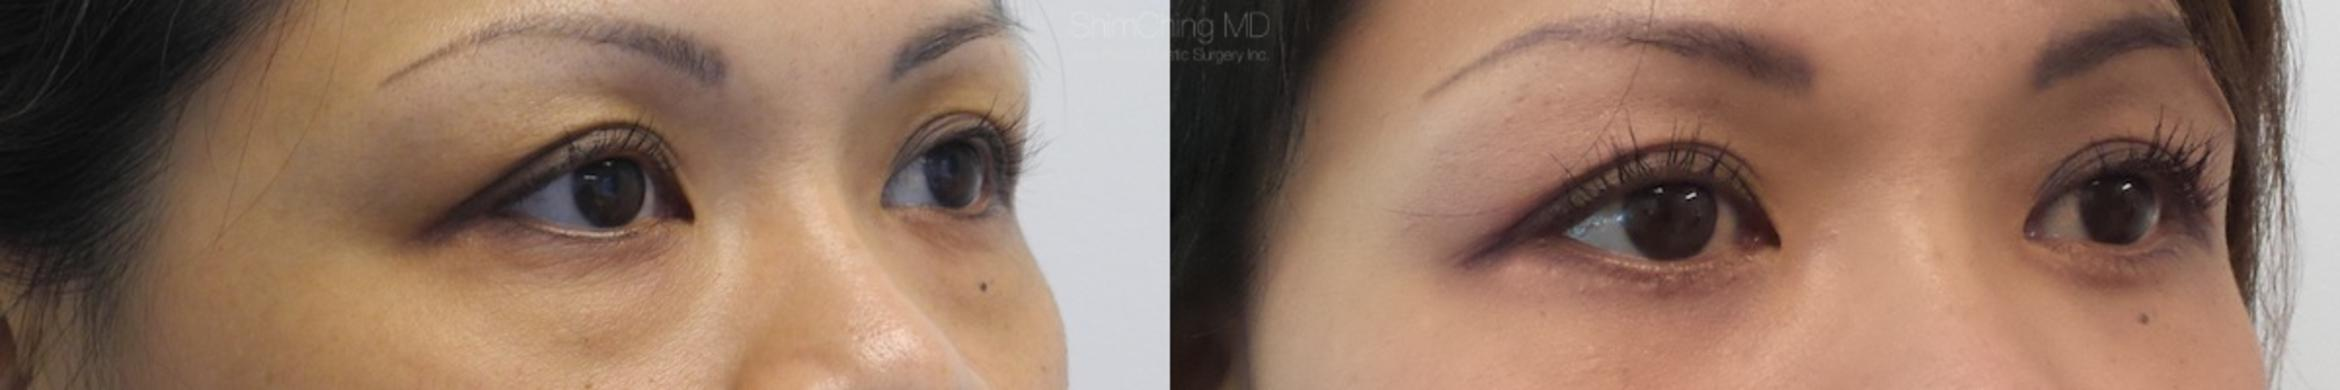 Homepage Featured Cases Case 165 Before & After View #2 | Honolulu, HI | Shim Ching, MD: Asia Pacific Plastic Surgery